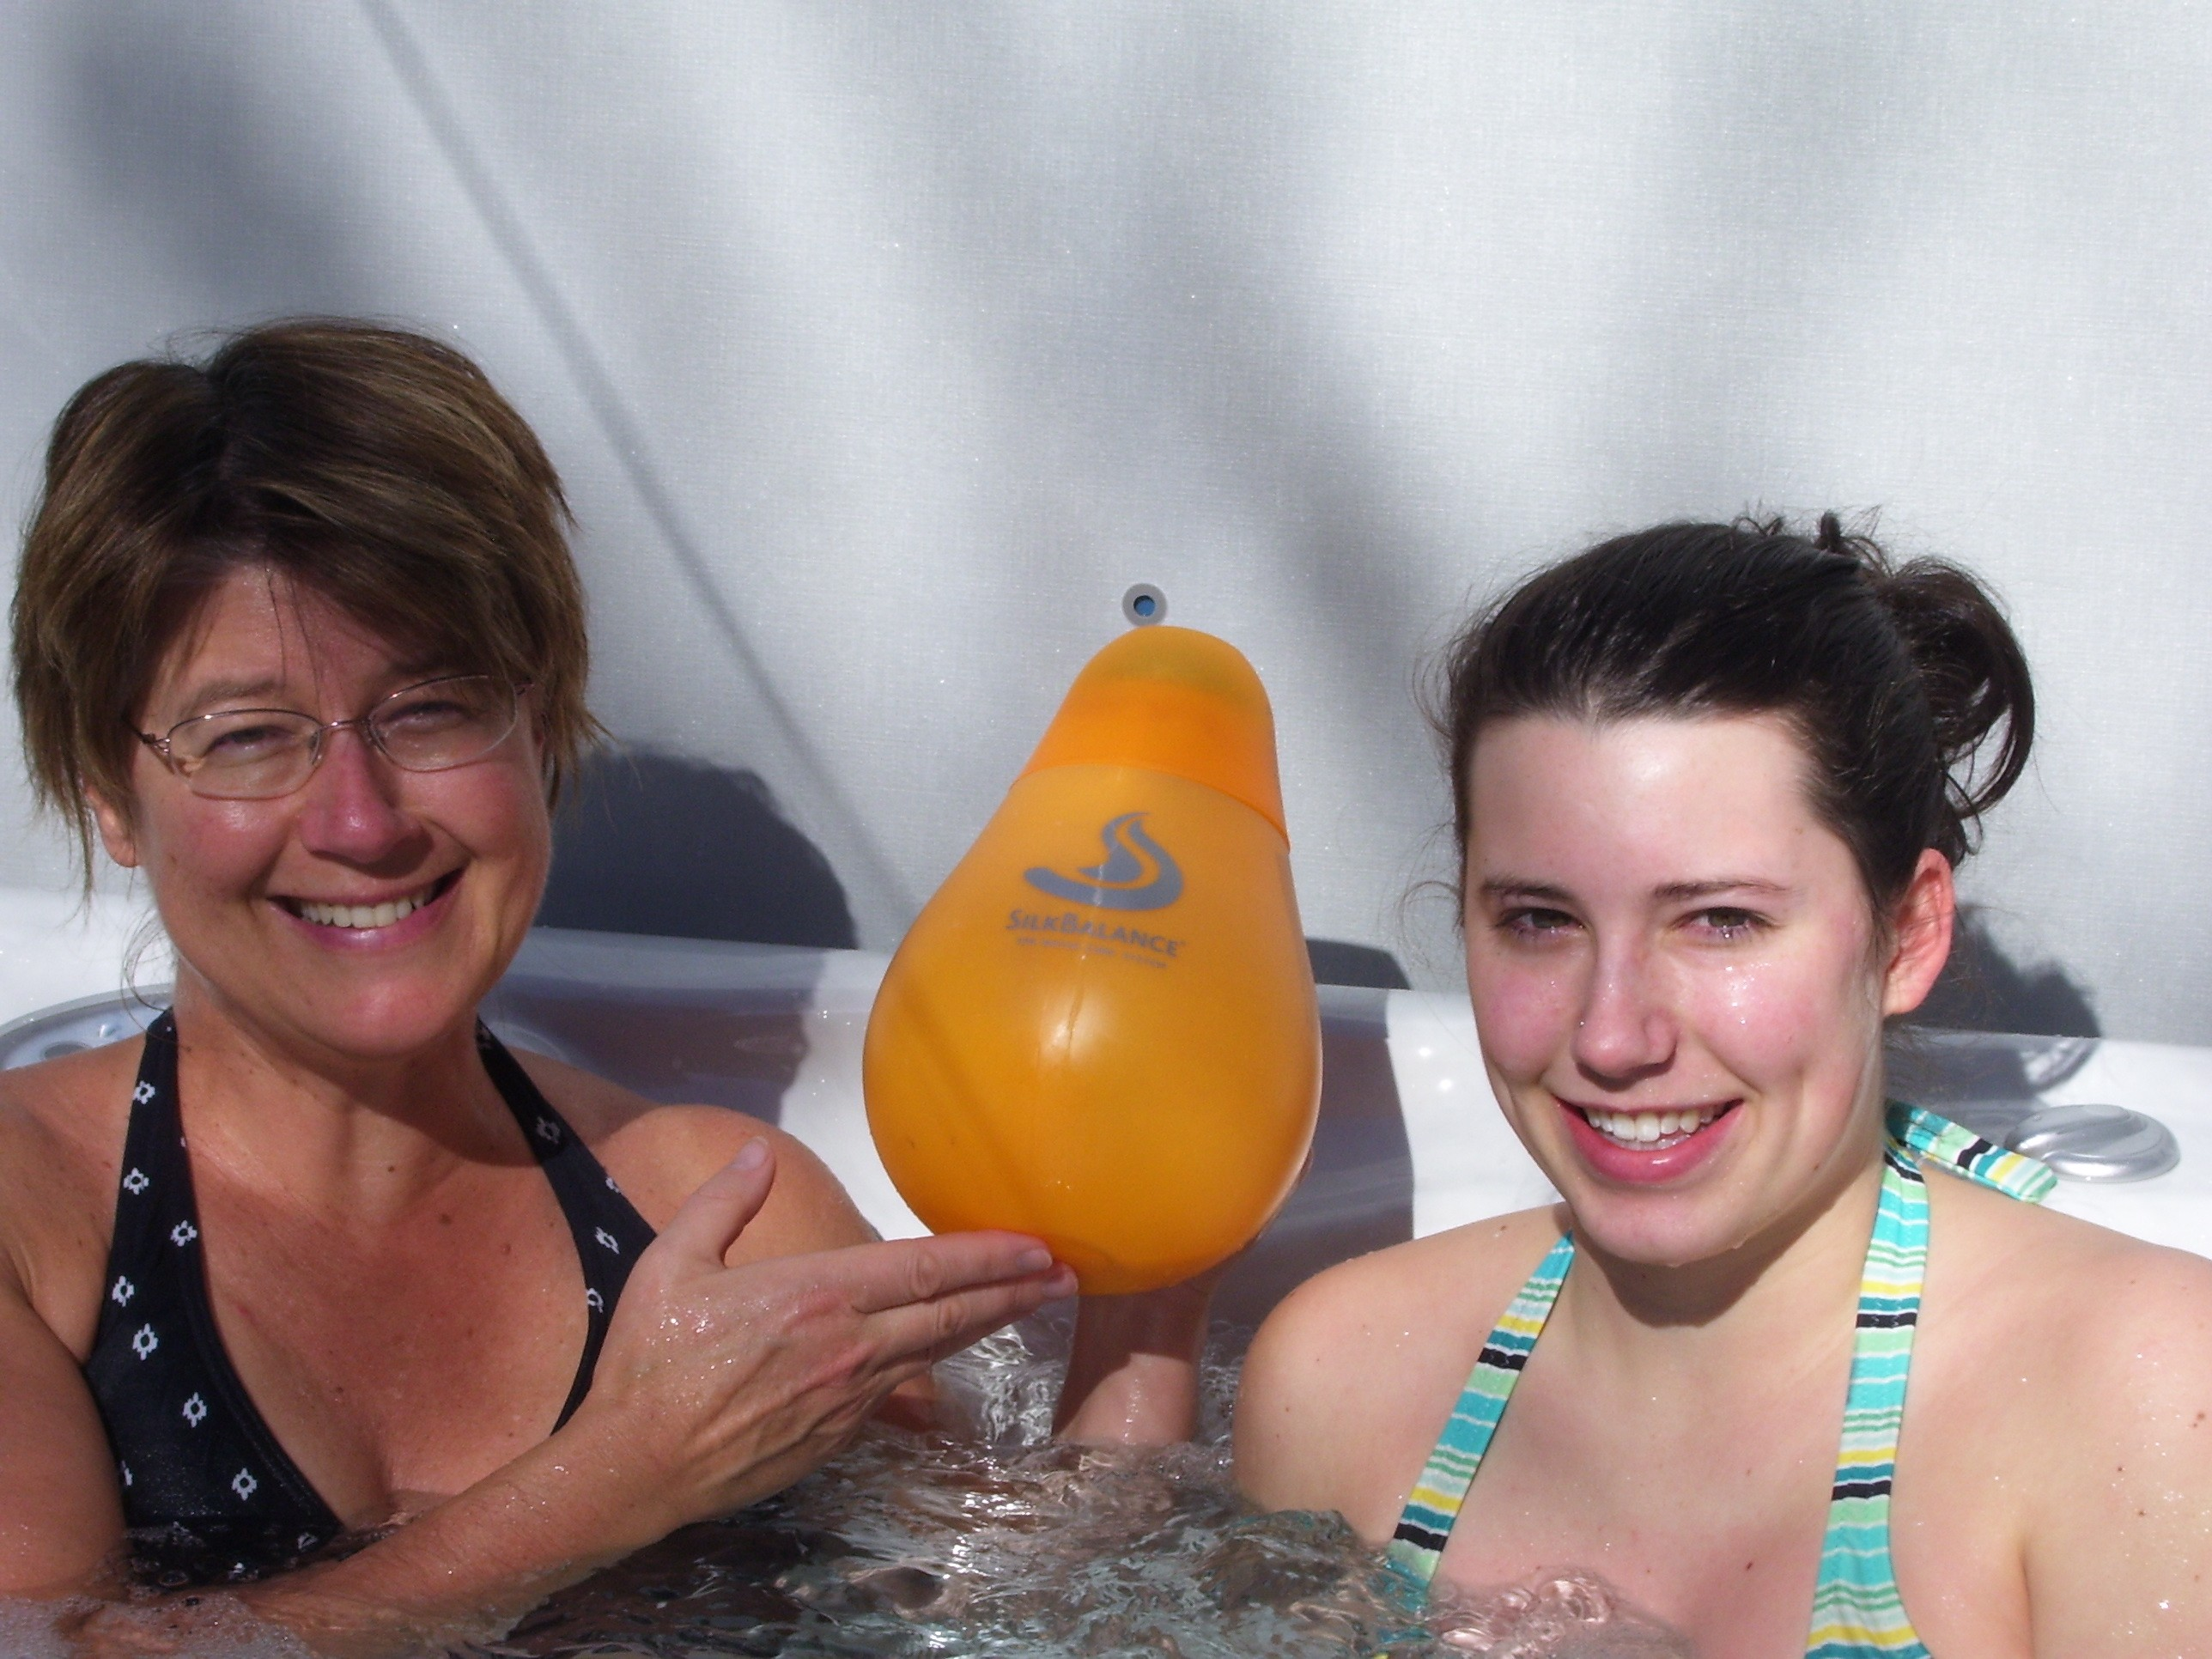 Enjoy Your Hot Tub without Itchiness and Rash!